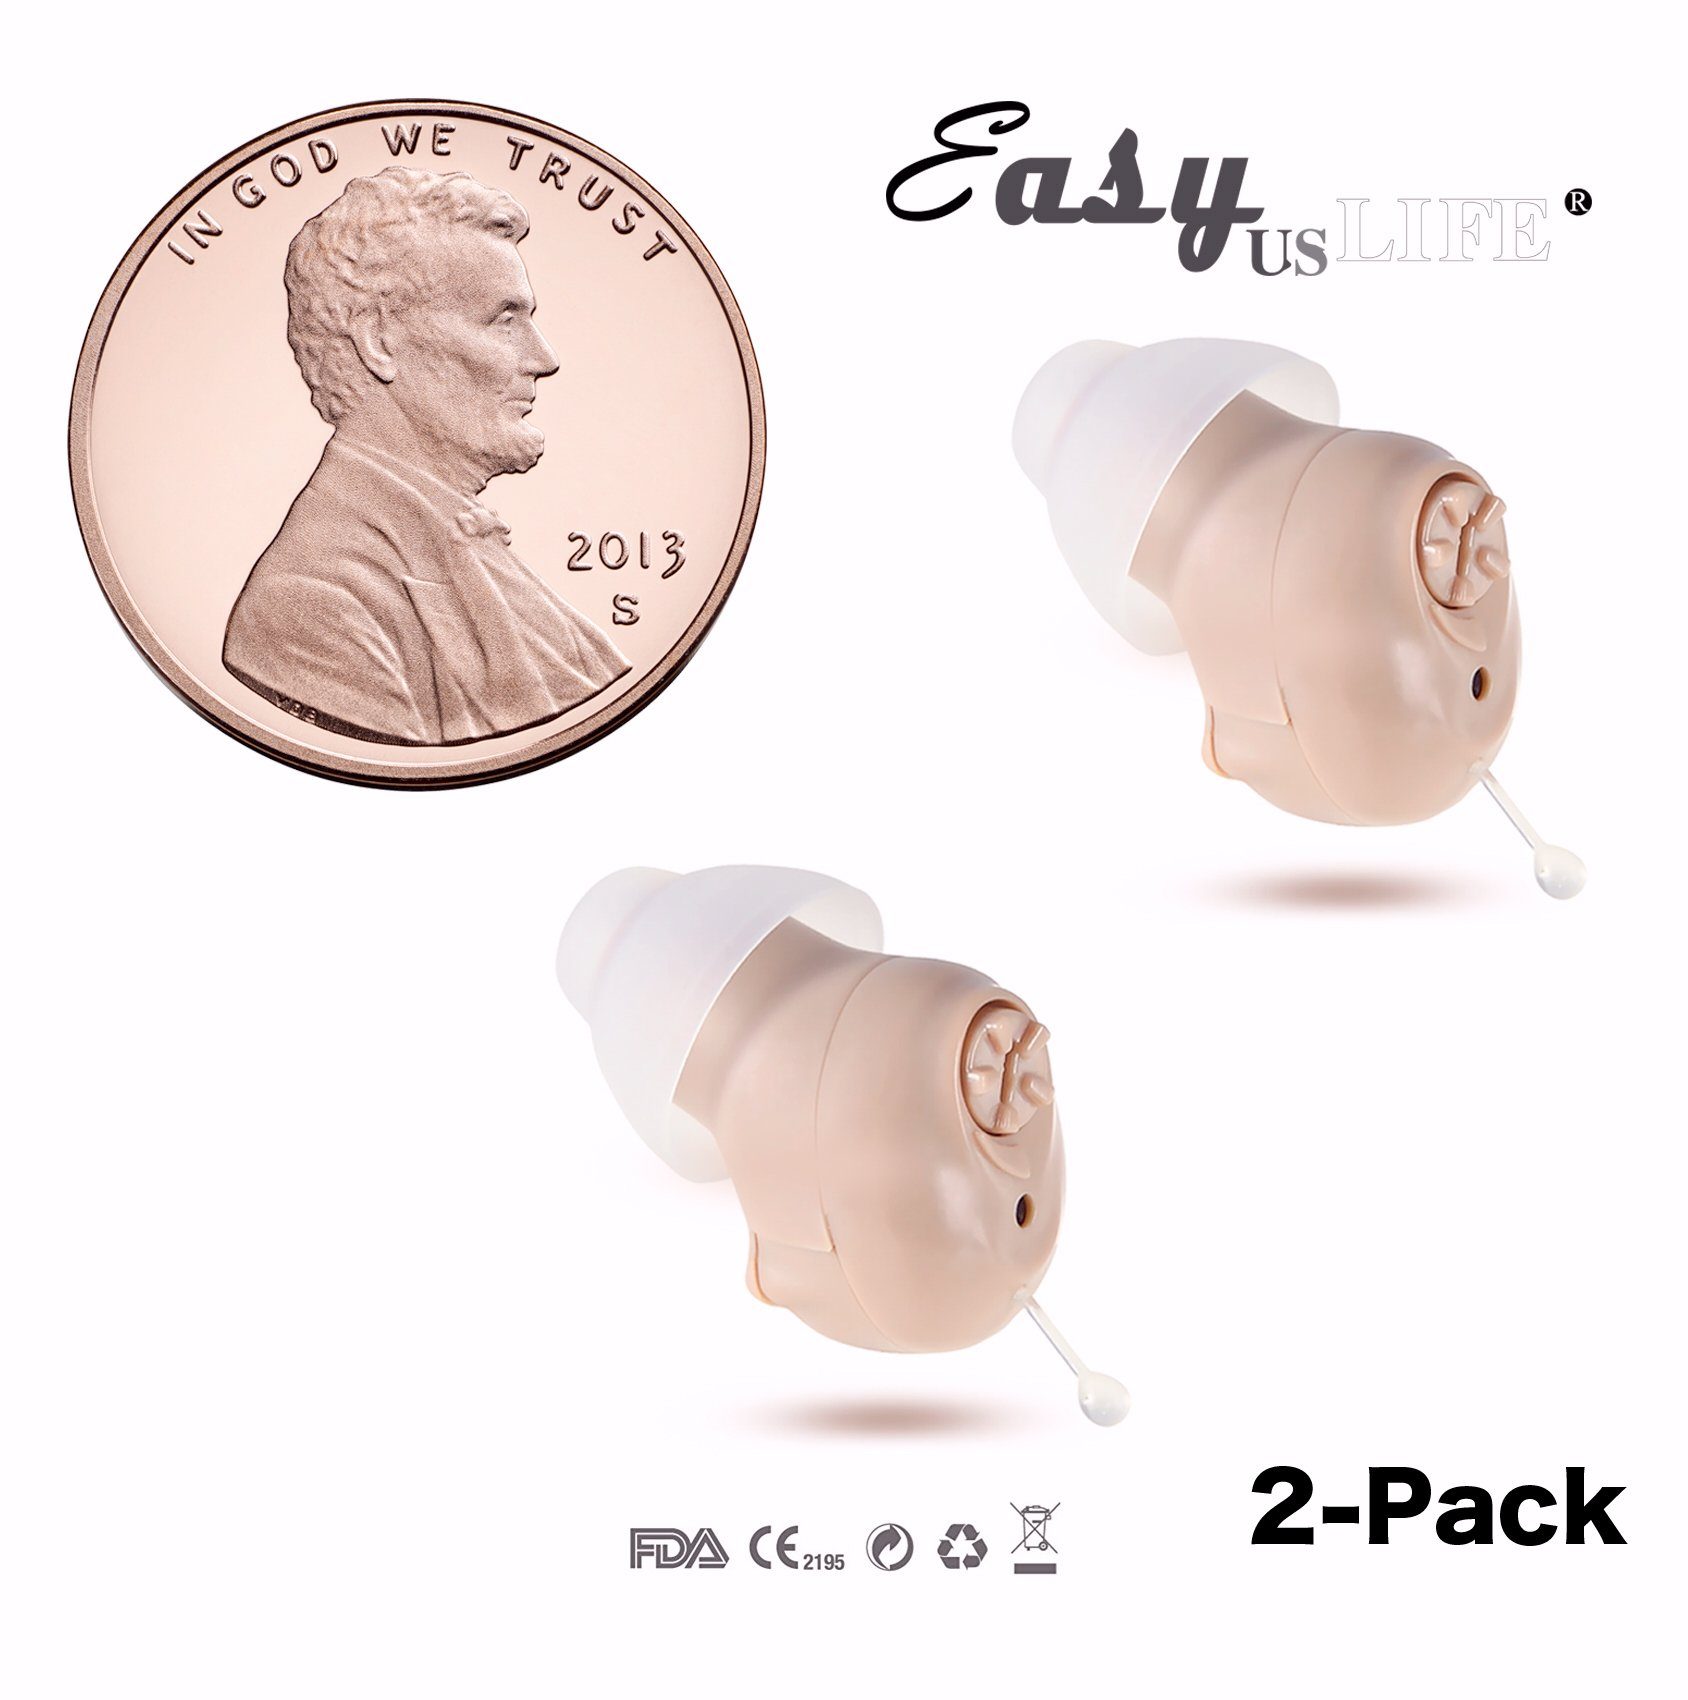 Super Mini,Beige Color,in-The-Canal (ITC),2-Pack New Digital Hearing Amplifier, Clearly Technology, Interchangeable, Suitable for Men and Women, Trademark: Easyuslife